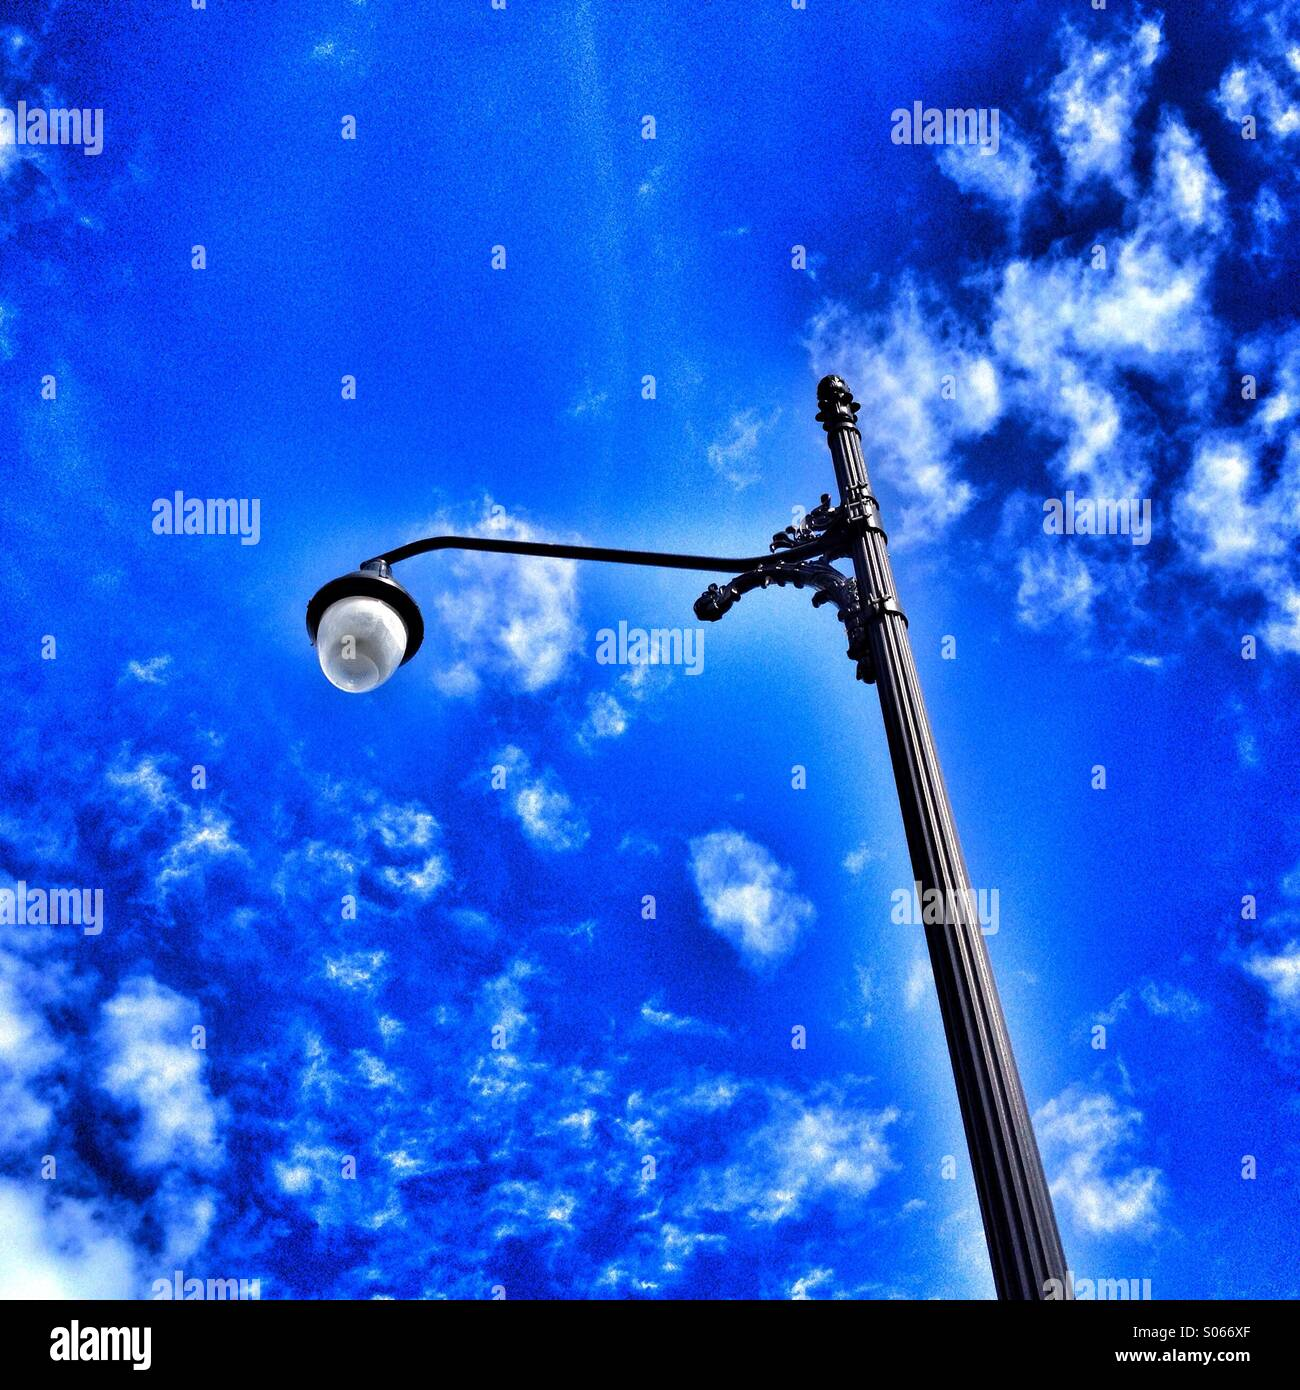 Lamp - Stock Image